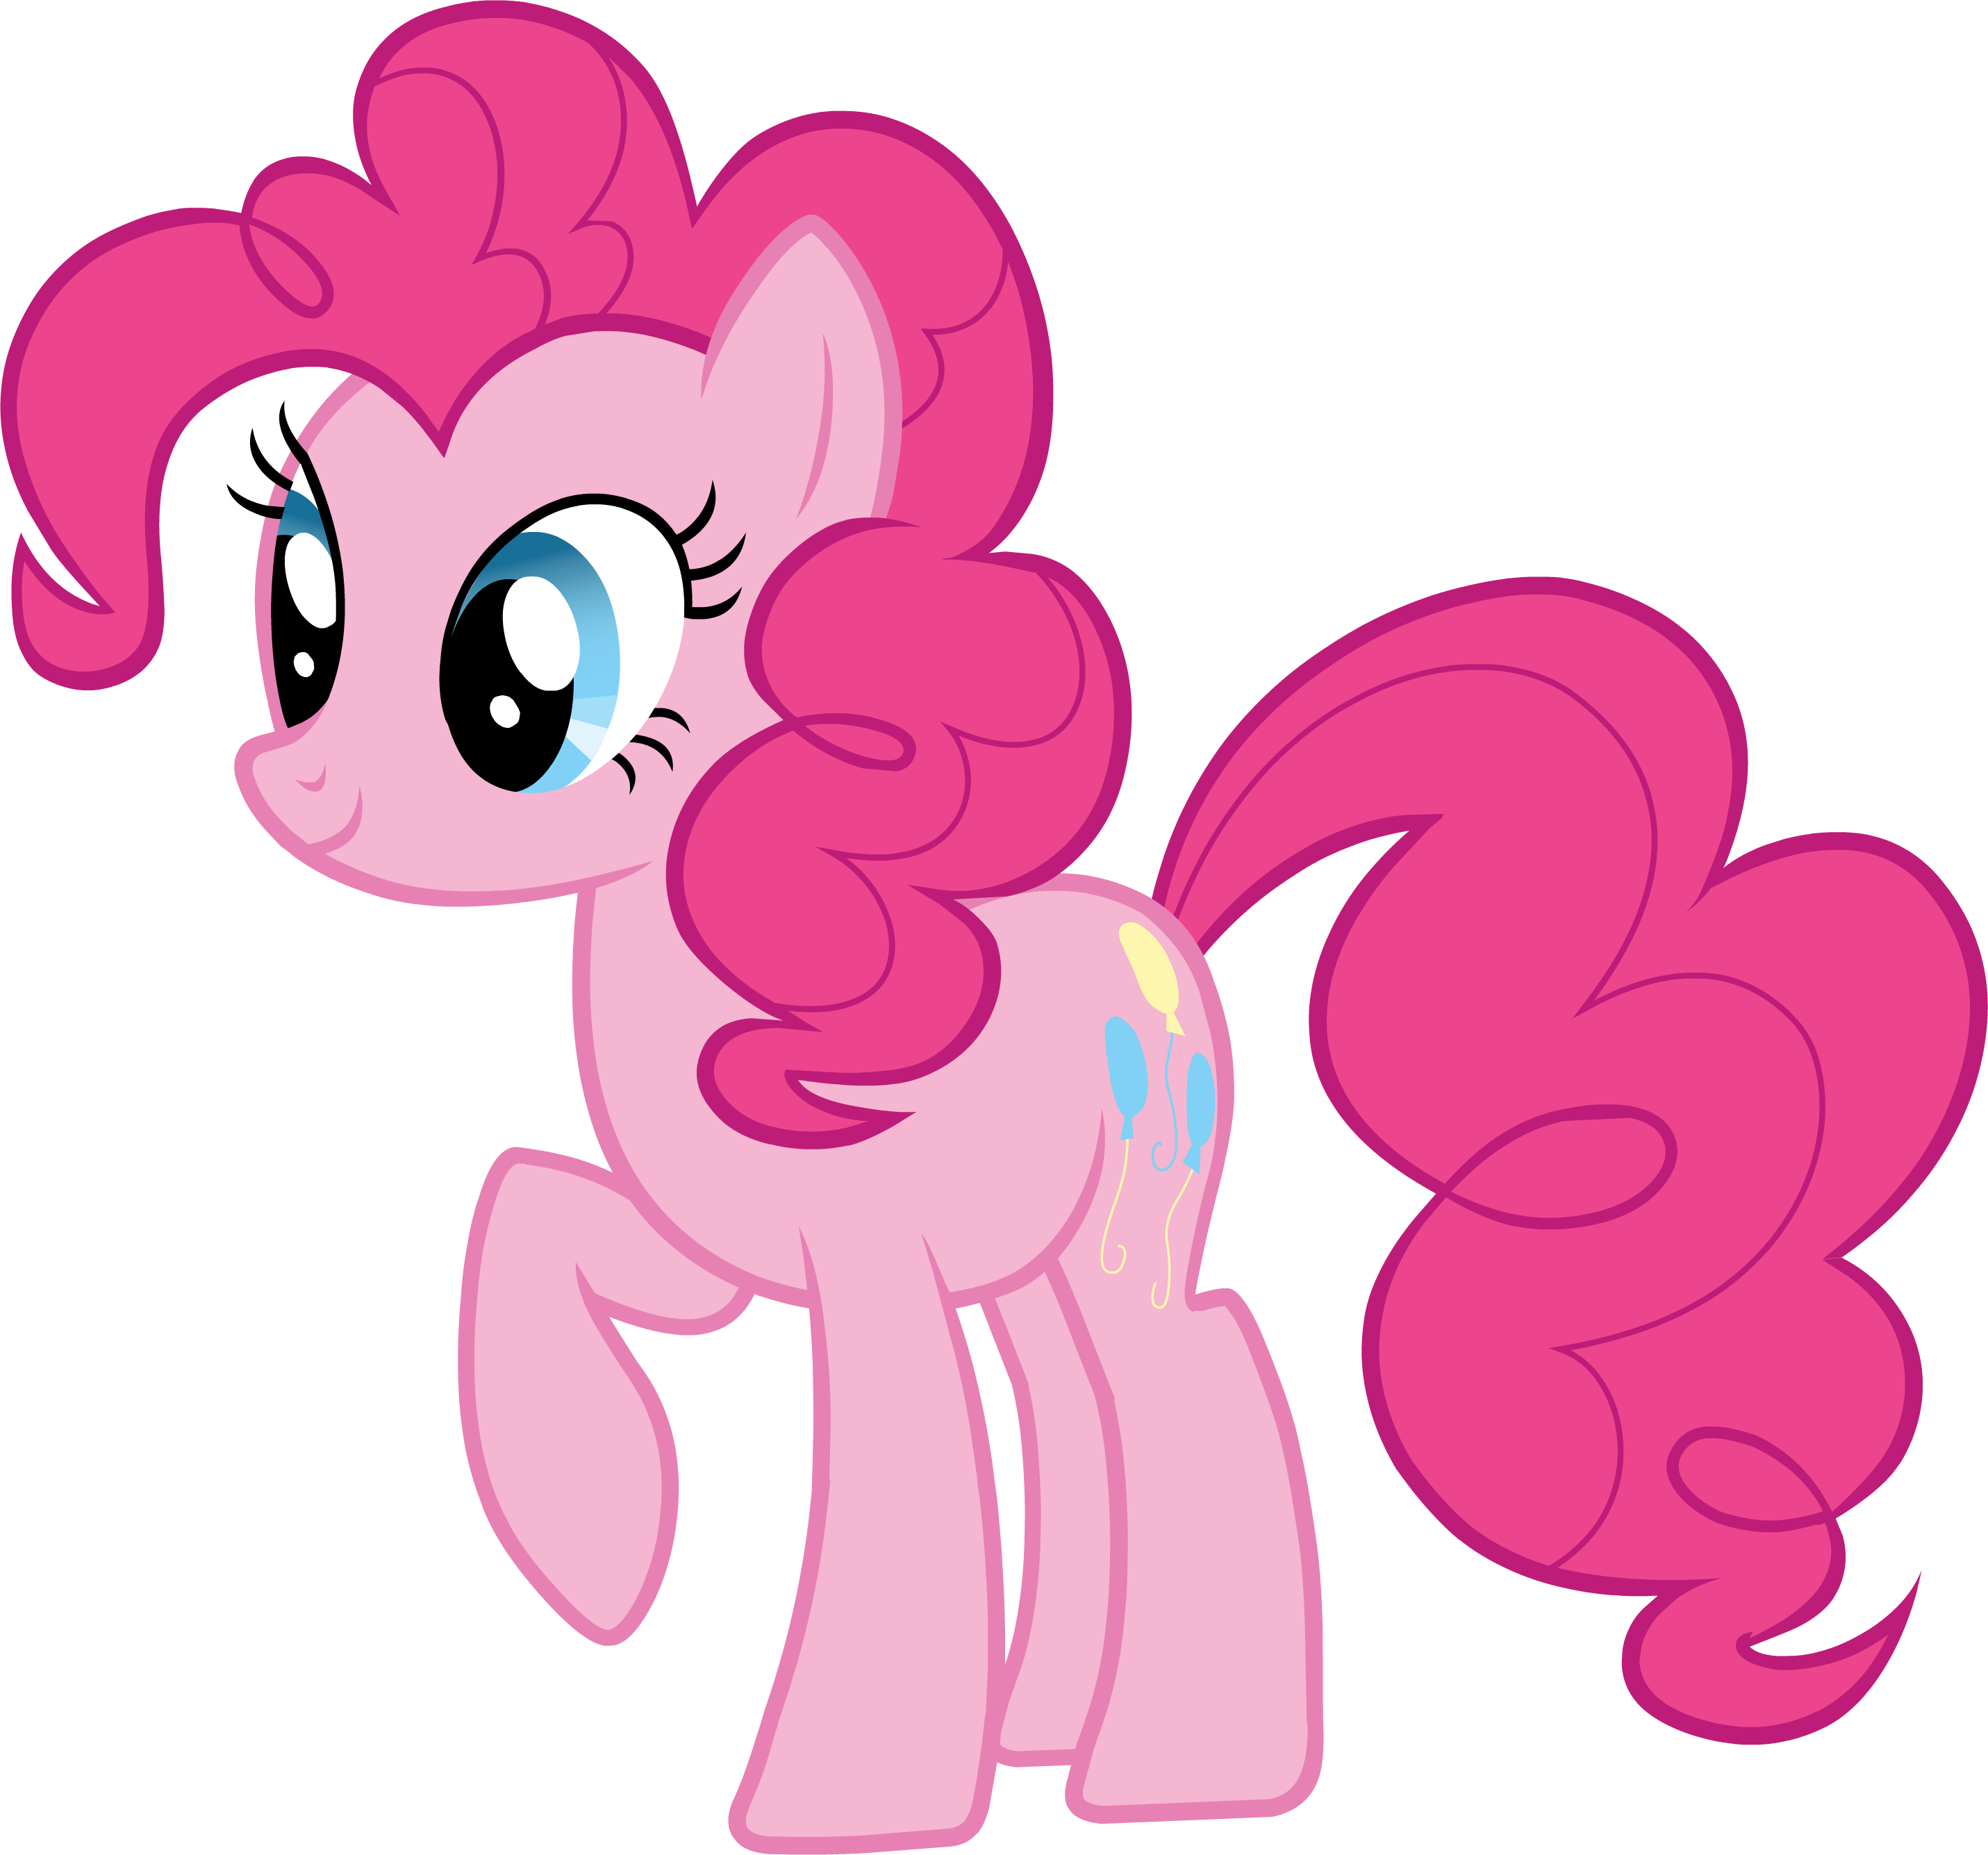 Pink Cute My Little Pony Clipart #47122.